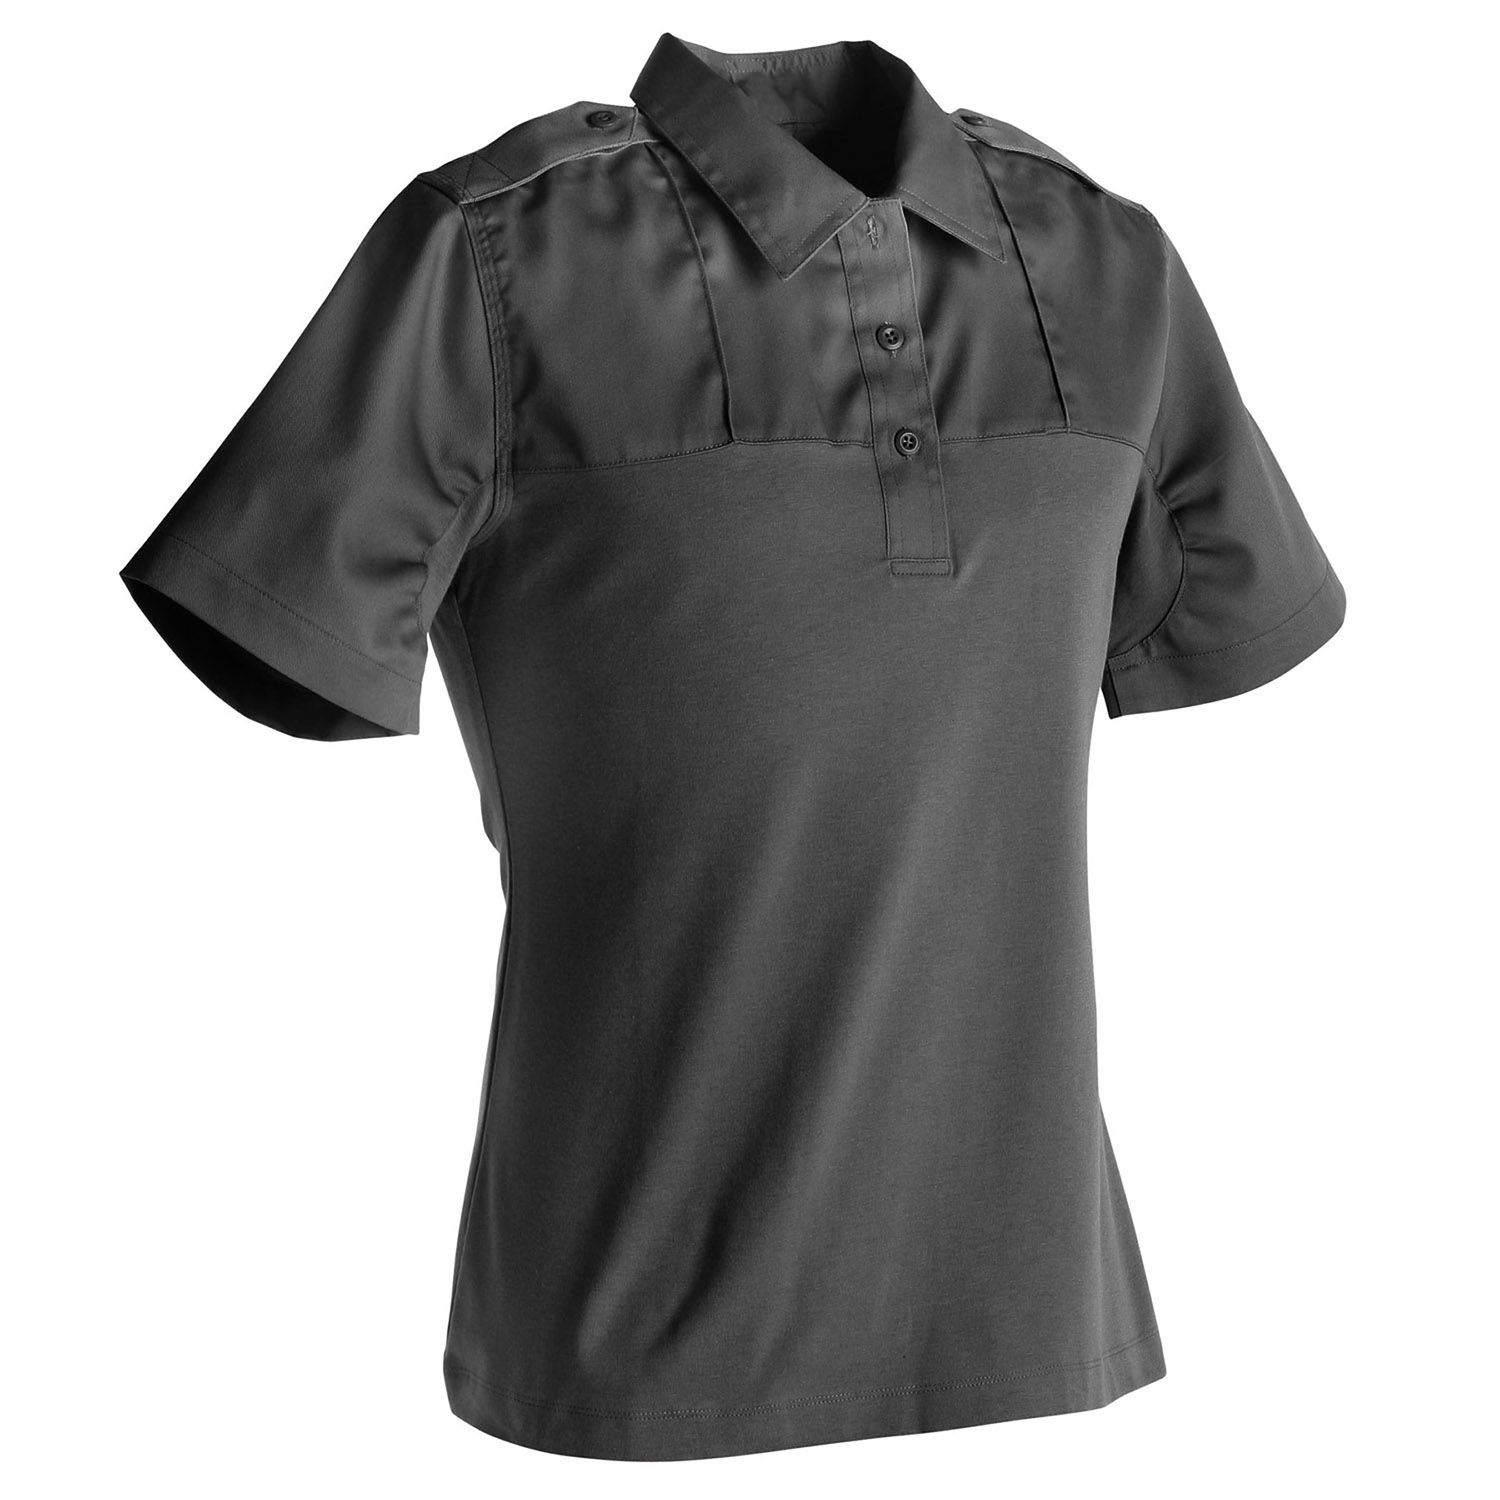 5.11 Tactical Short Sleeve PDU Rapid Shirt